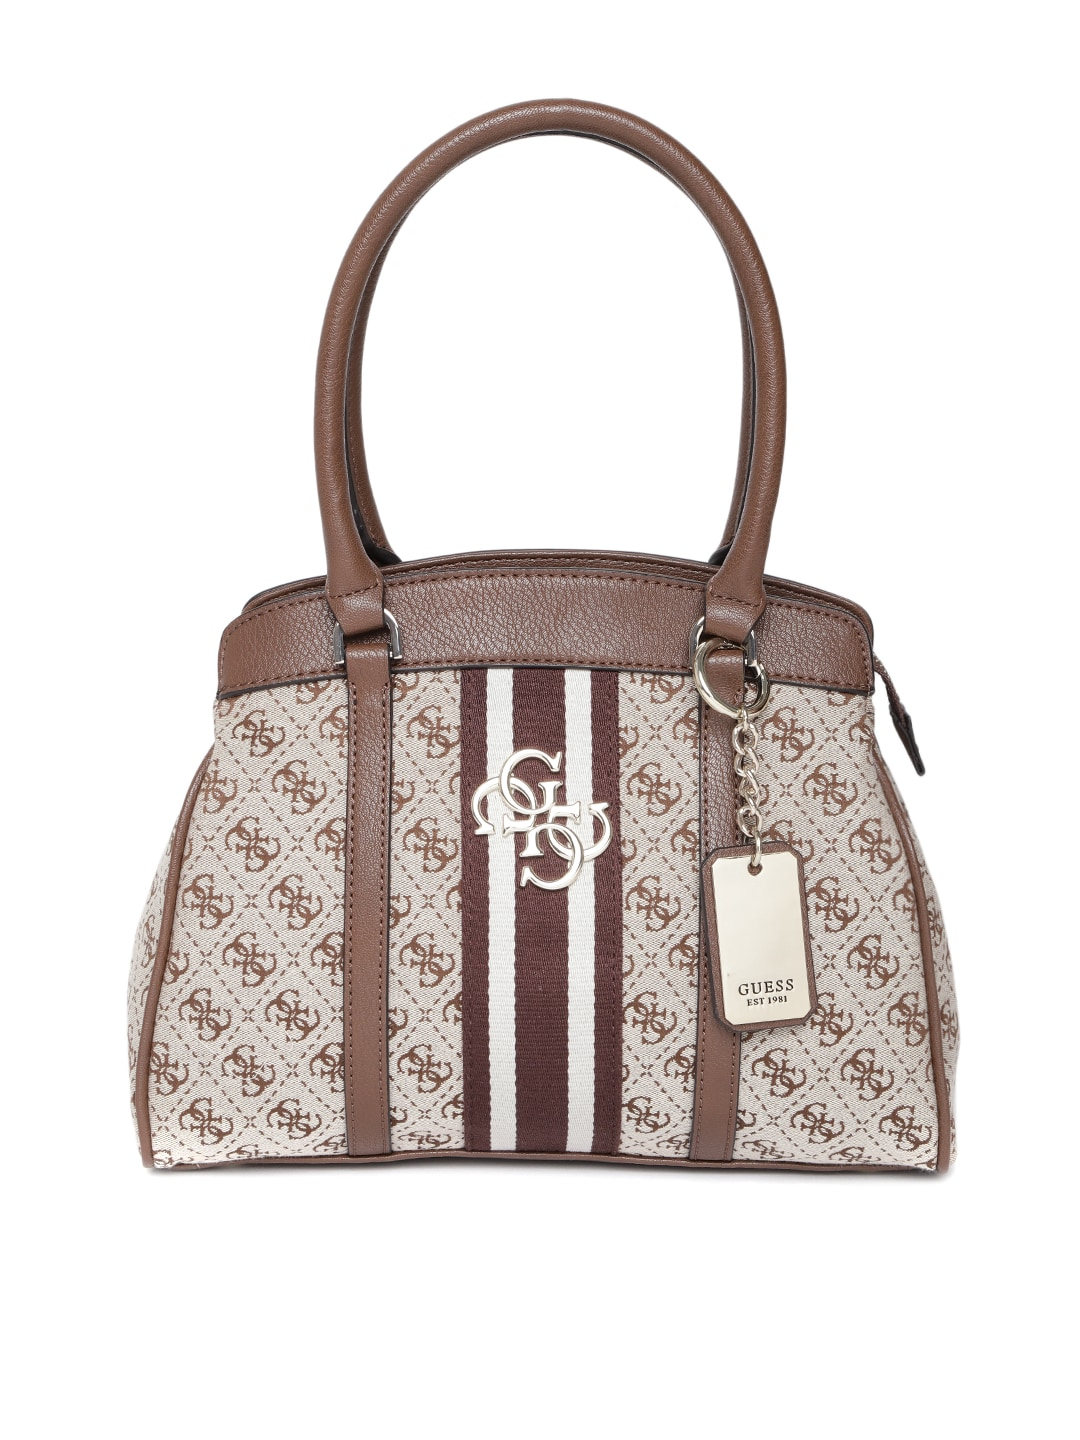 195b83d987 guess handbags amazon - Style Guru  Fashion